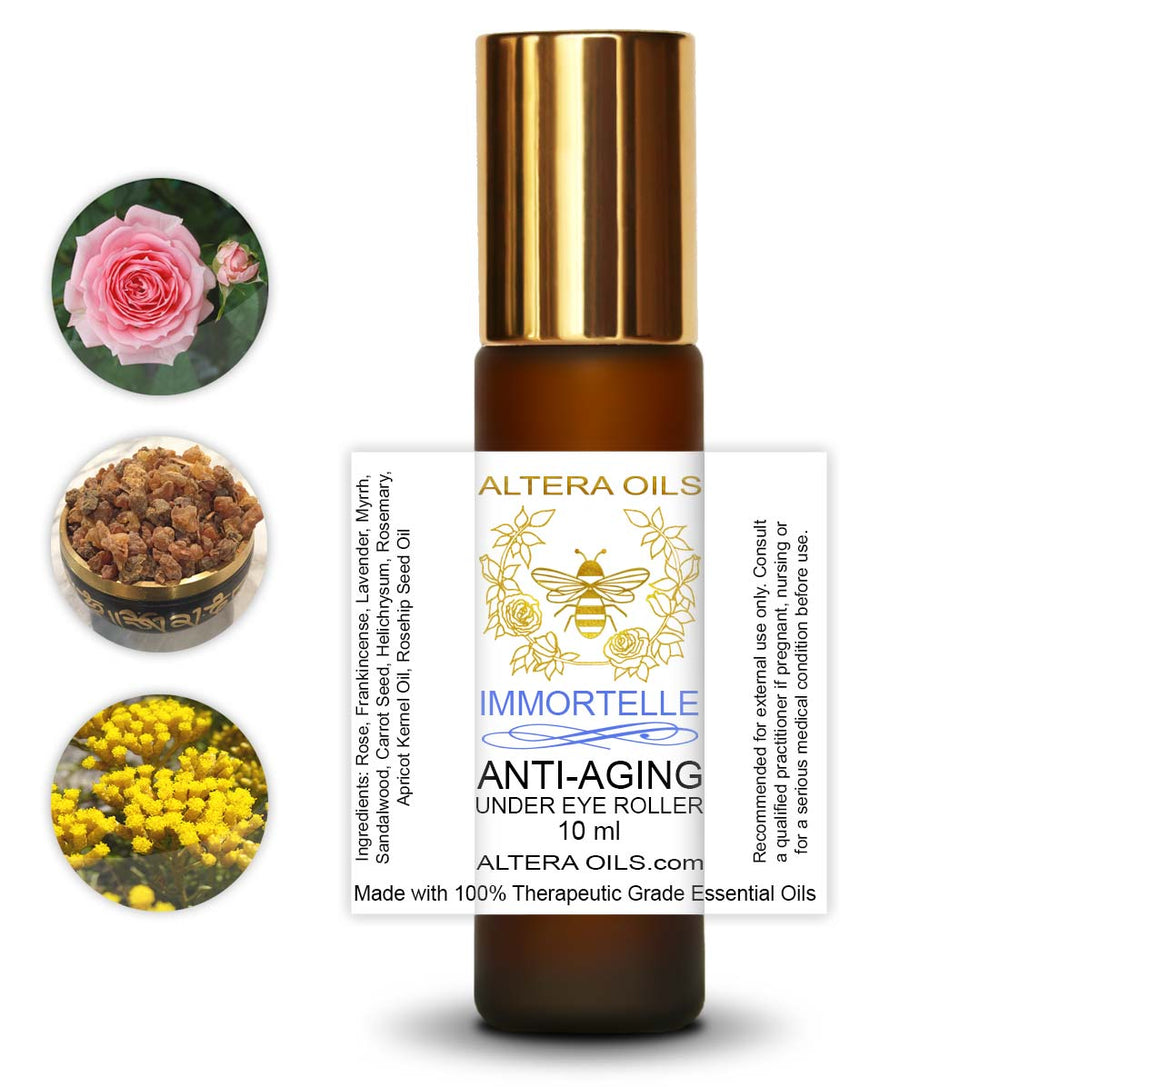 Immortelle Anti-Aging Under Eye Roller